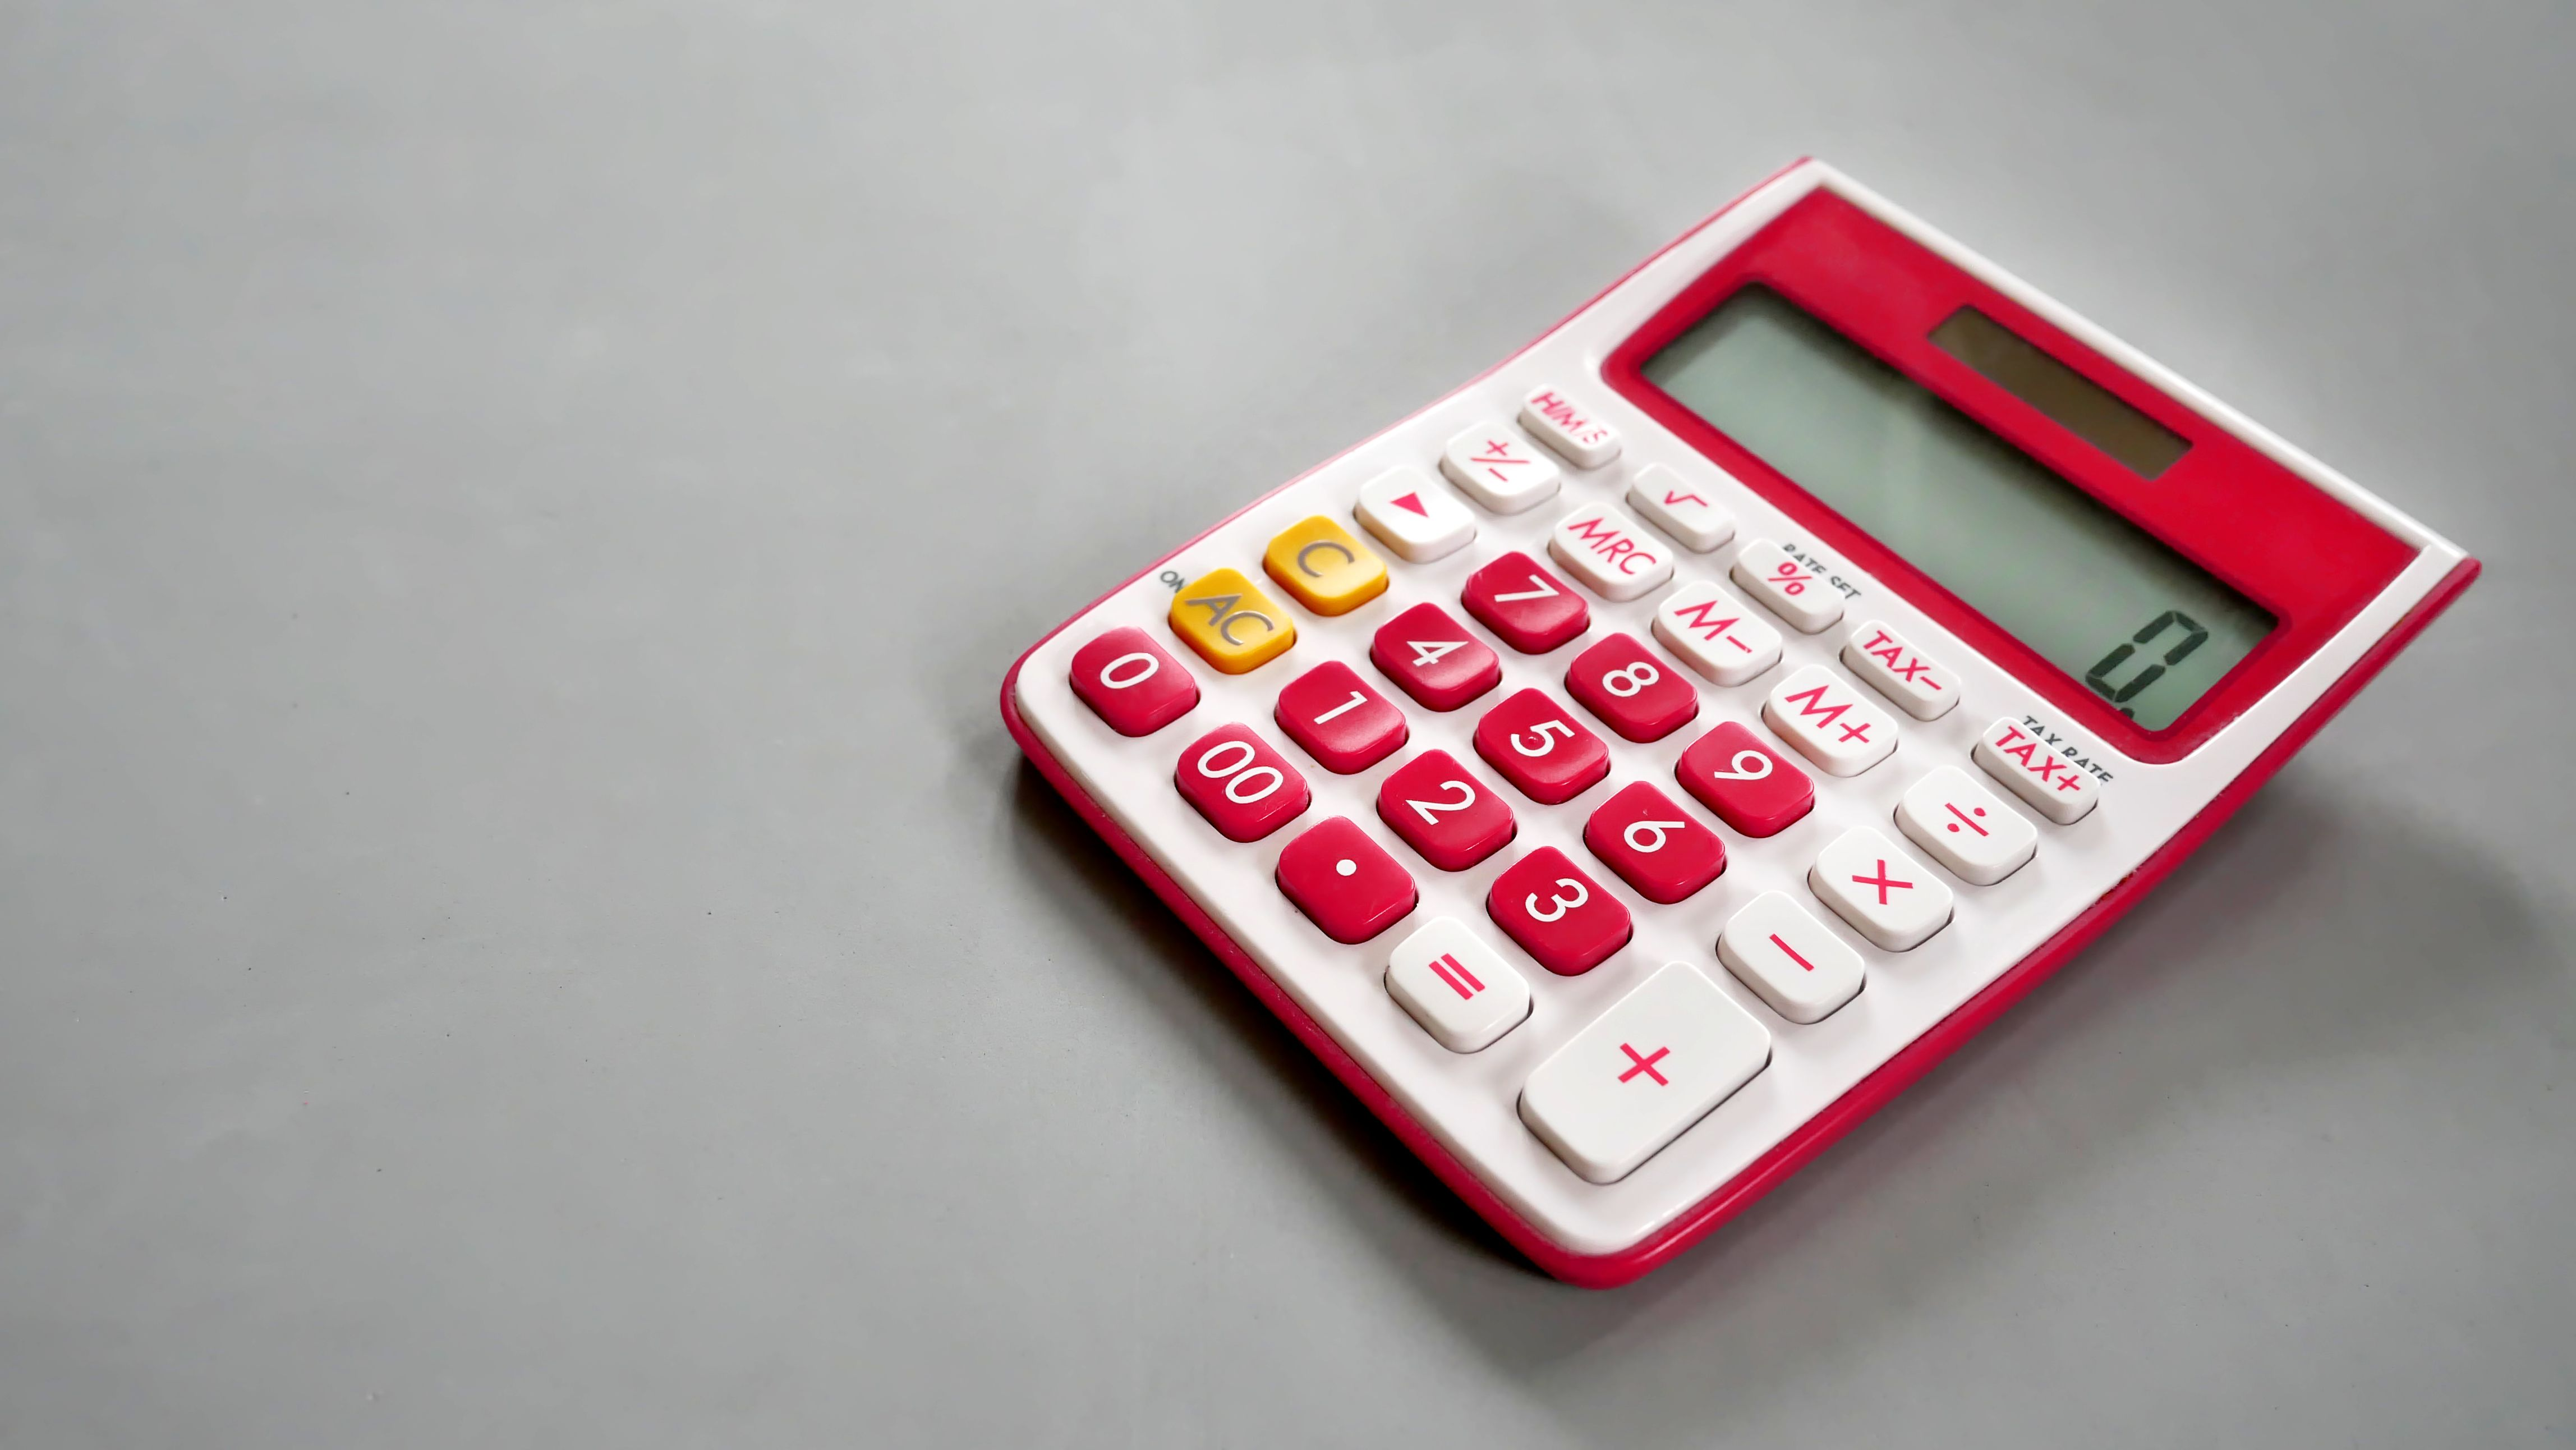 ten-digits-accounting-calculator-with-empty-space-left.jpg